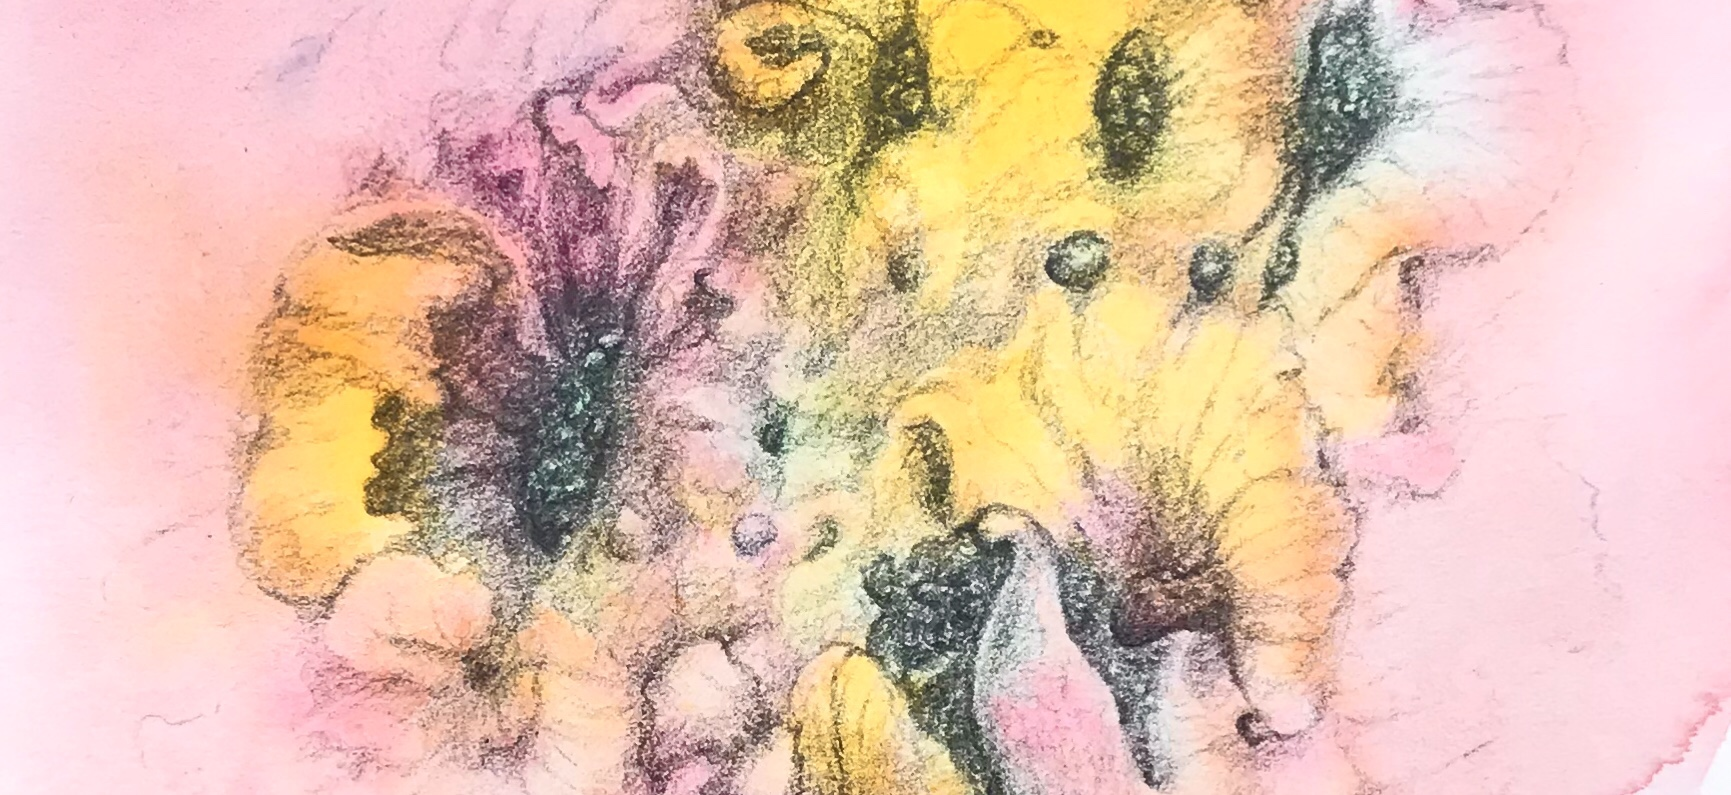 Detail of an original watercolor/ drawing by MJ Seal depicting some abstract flower like forms